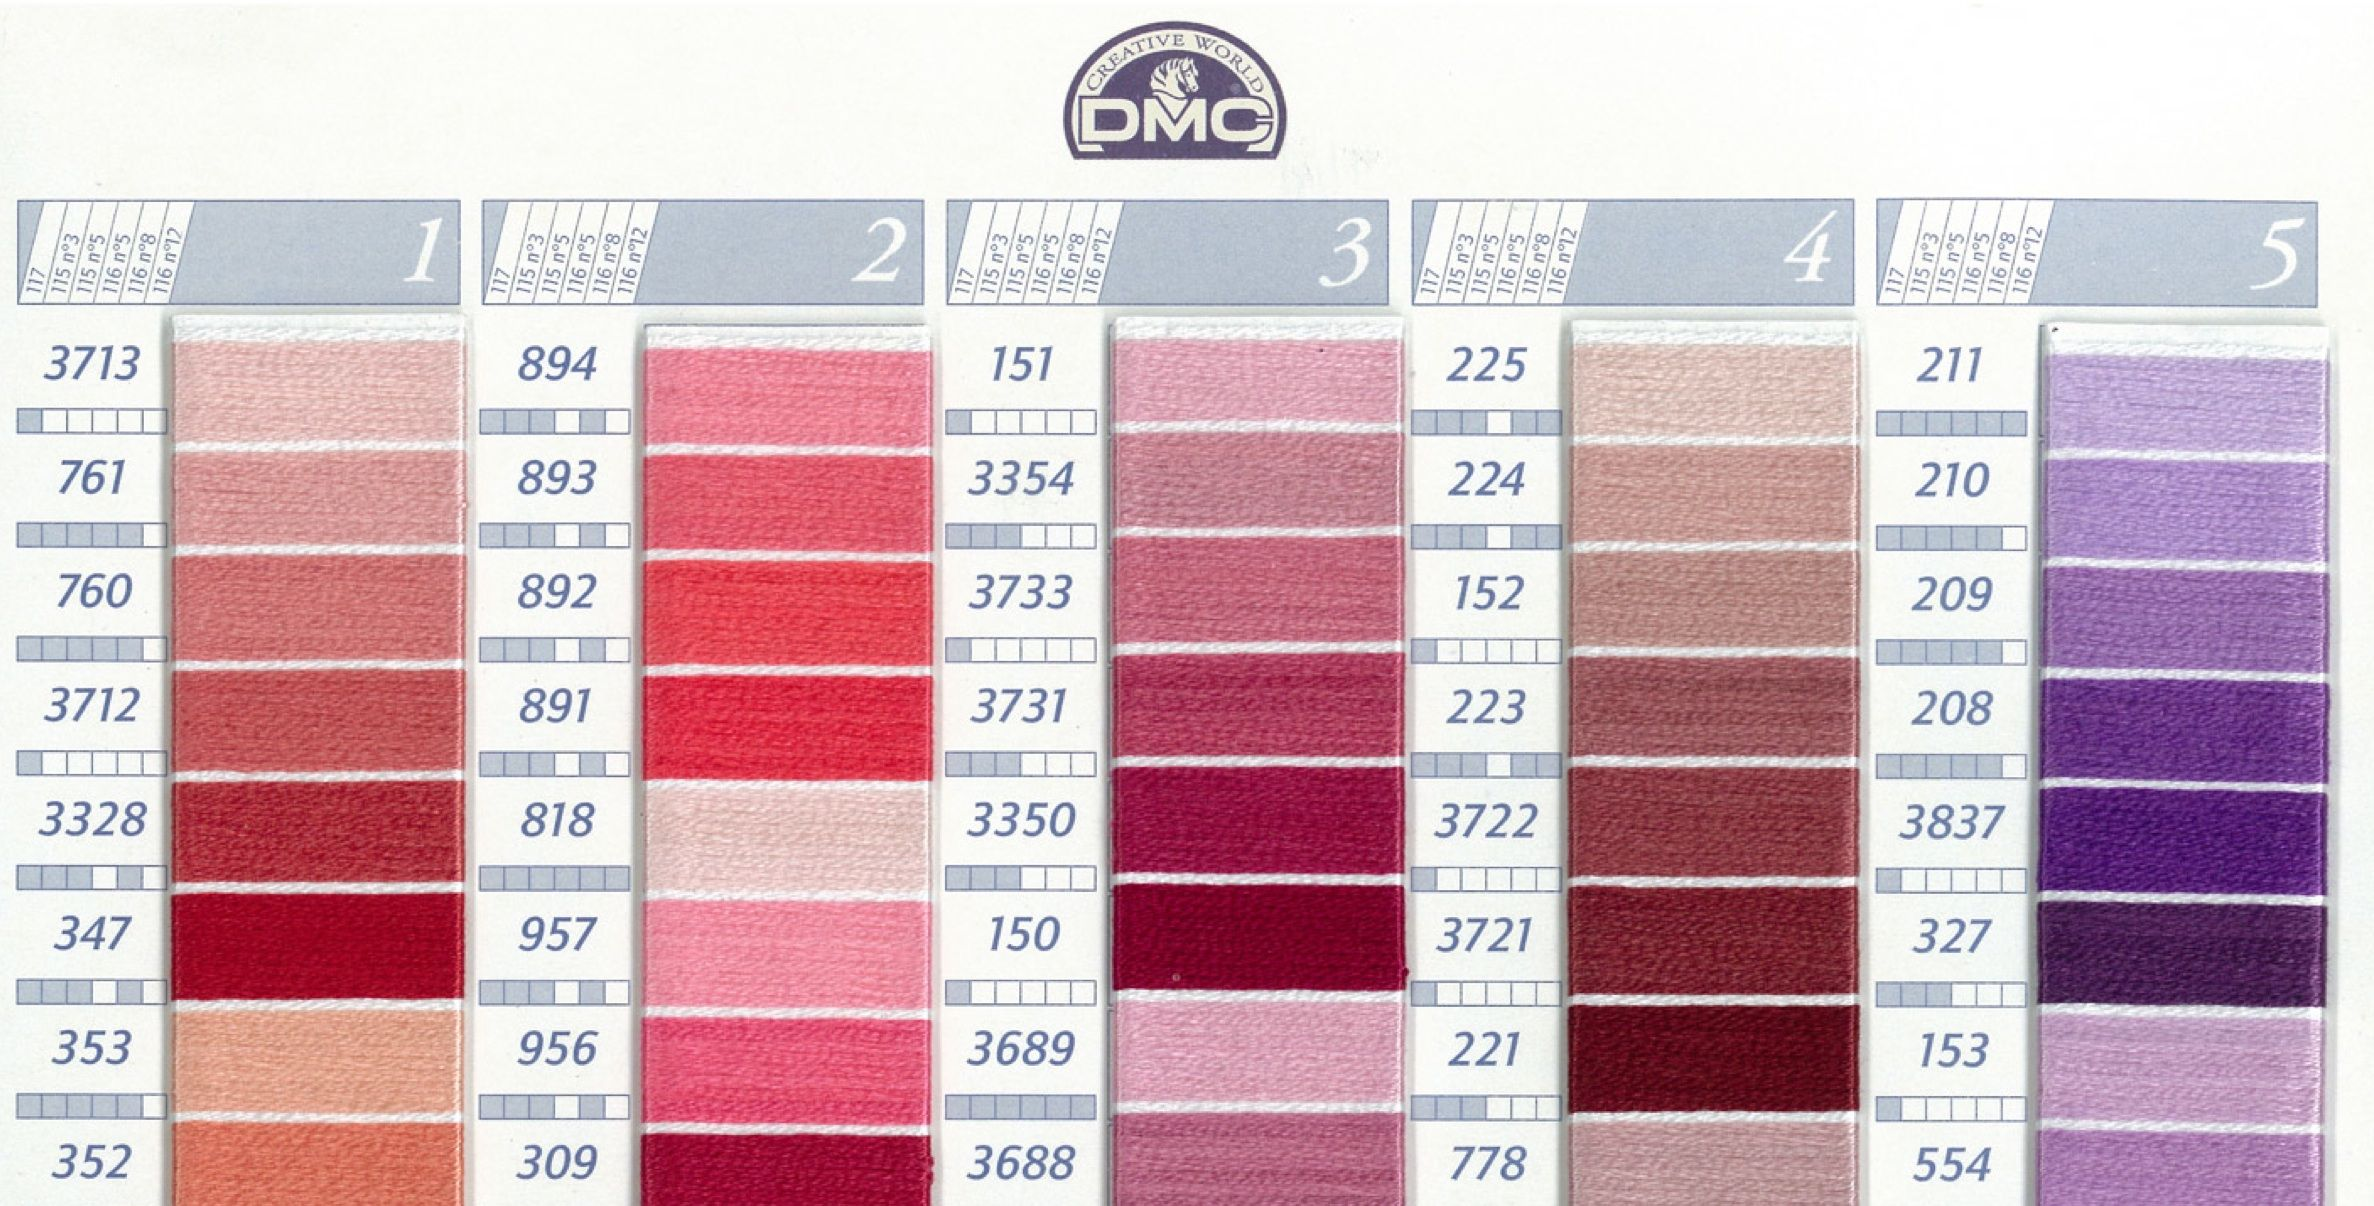 Color cardg 23741206 dmc floss color chart and numbers color cardg 23741206 dmc flosscolour nvjuhfo Images